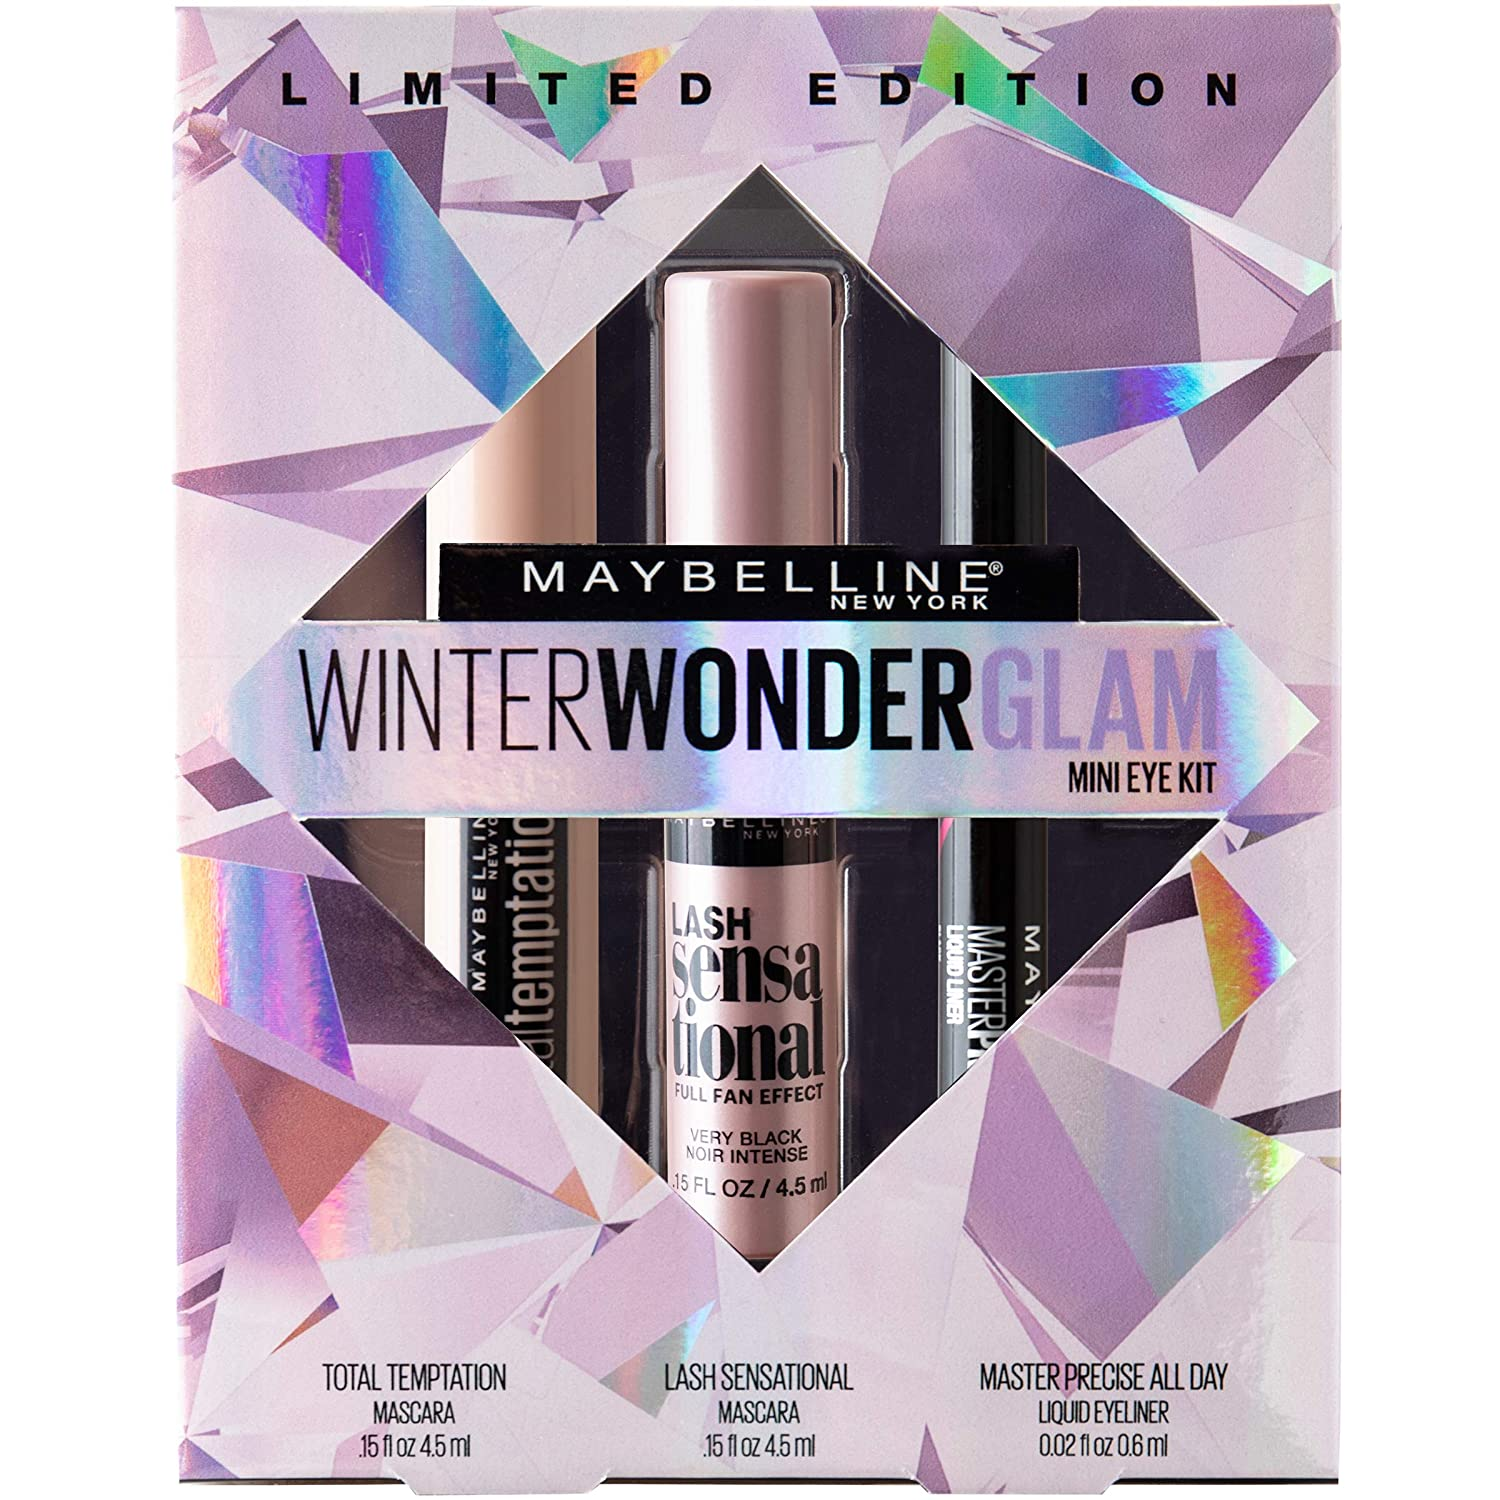 Maybelline Winter Wonderglam Mini Eye Kit, Holiday Mascara Kit